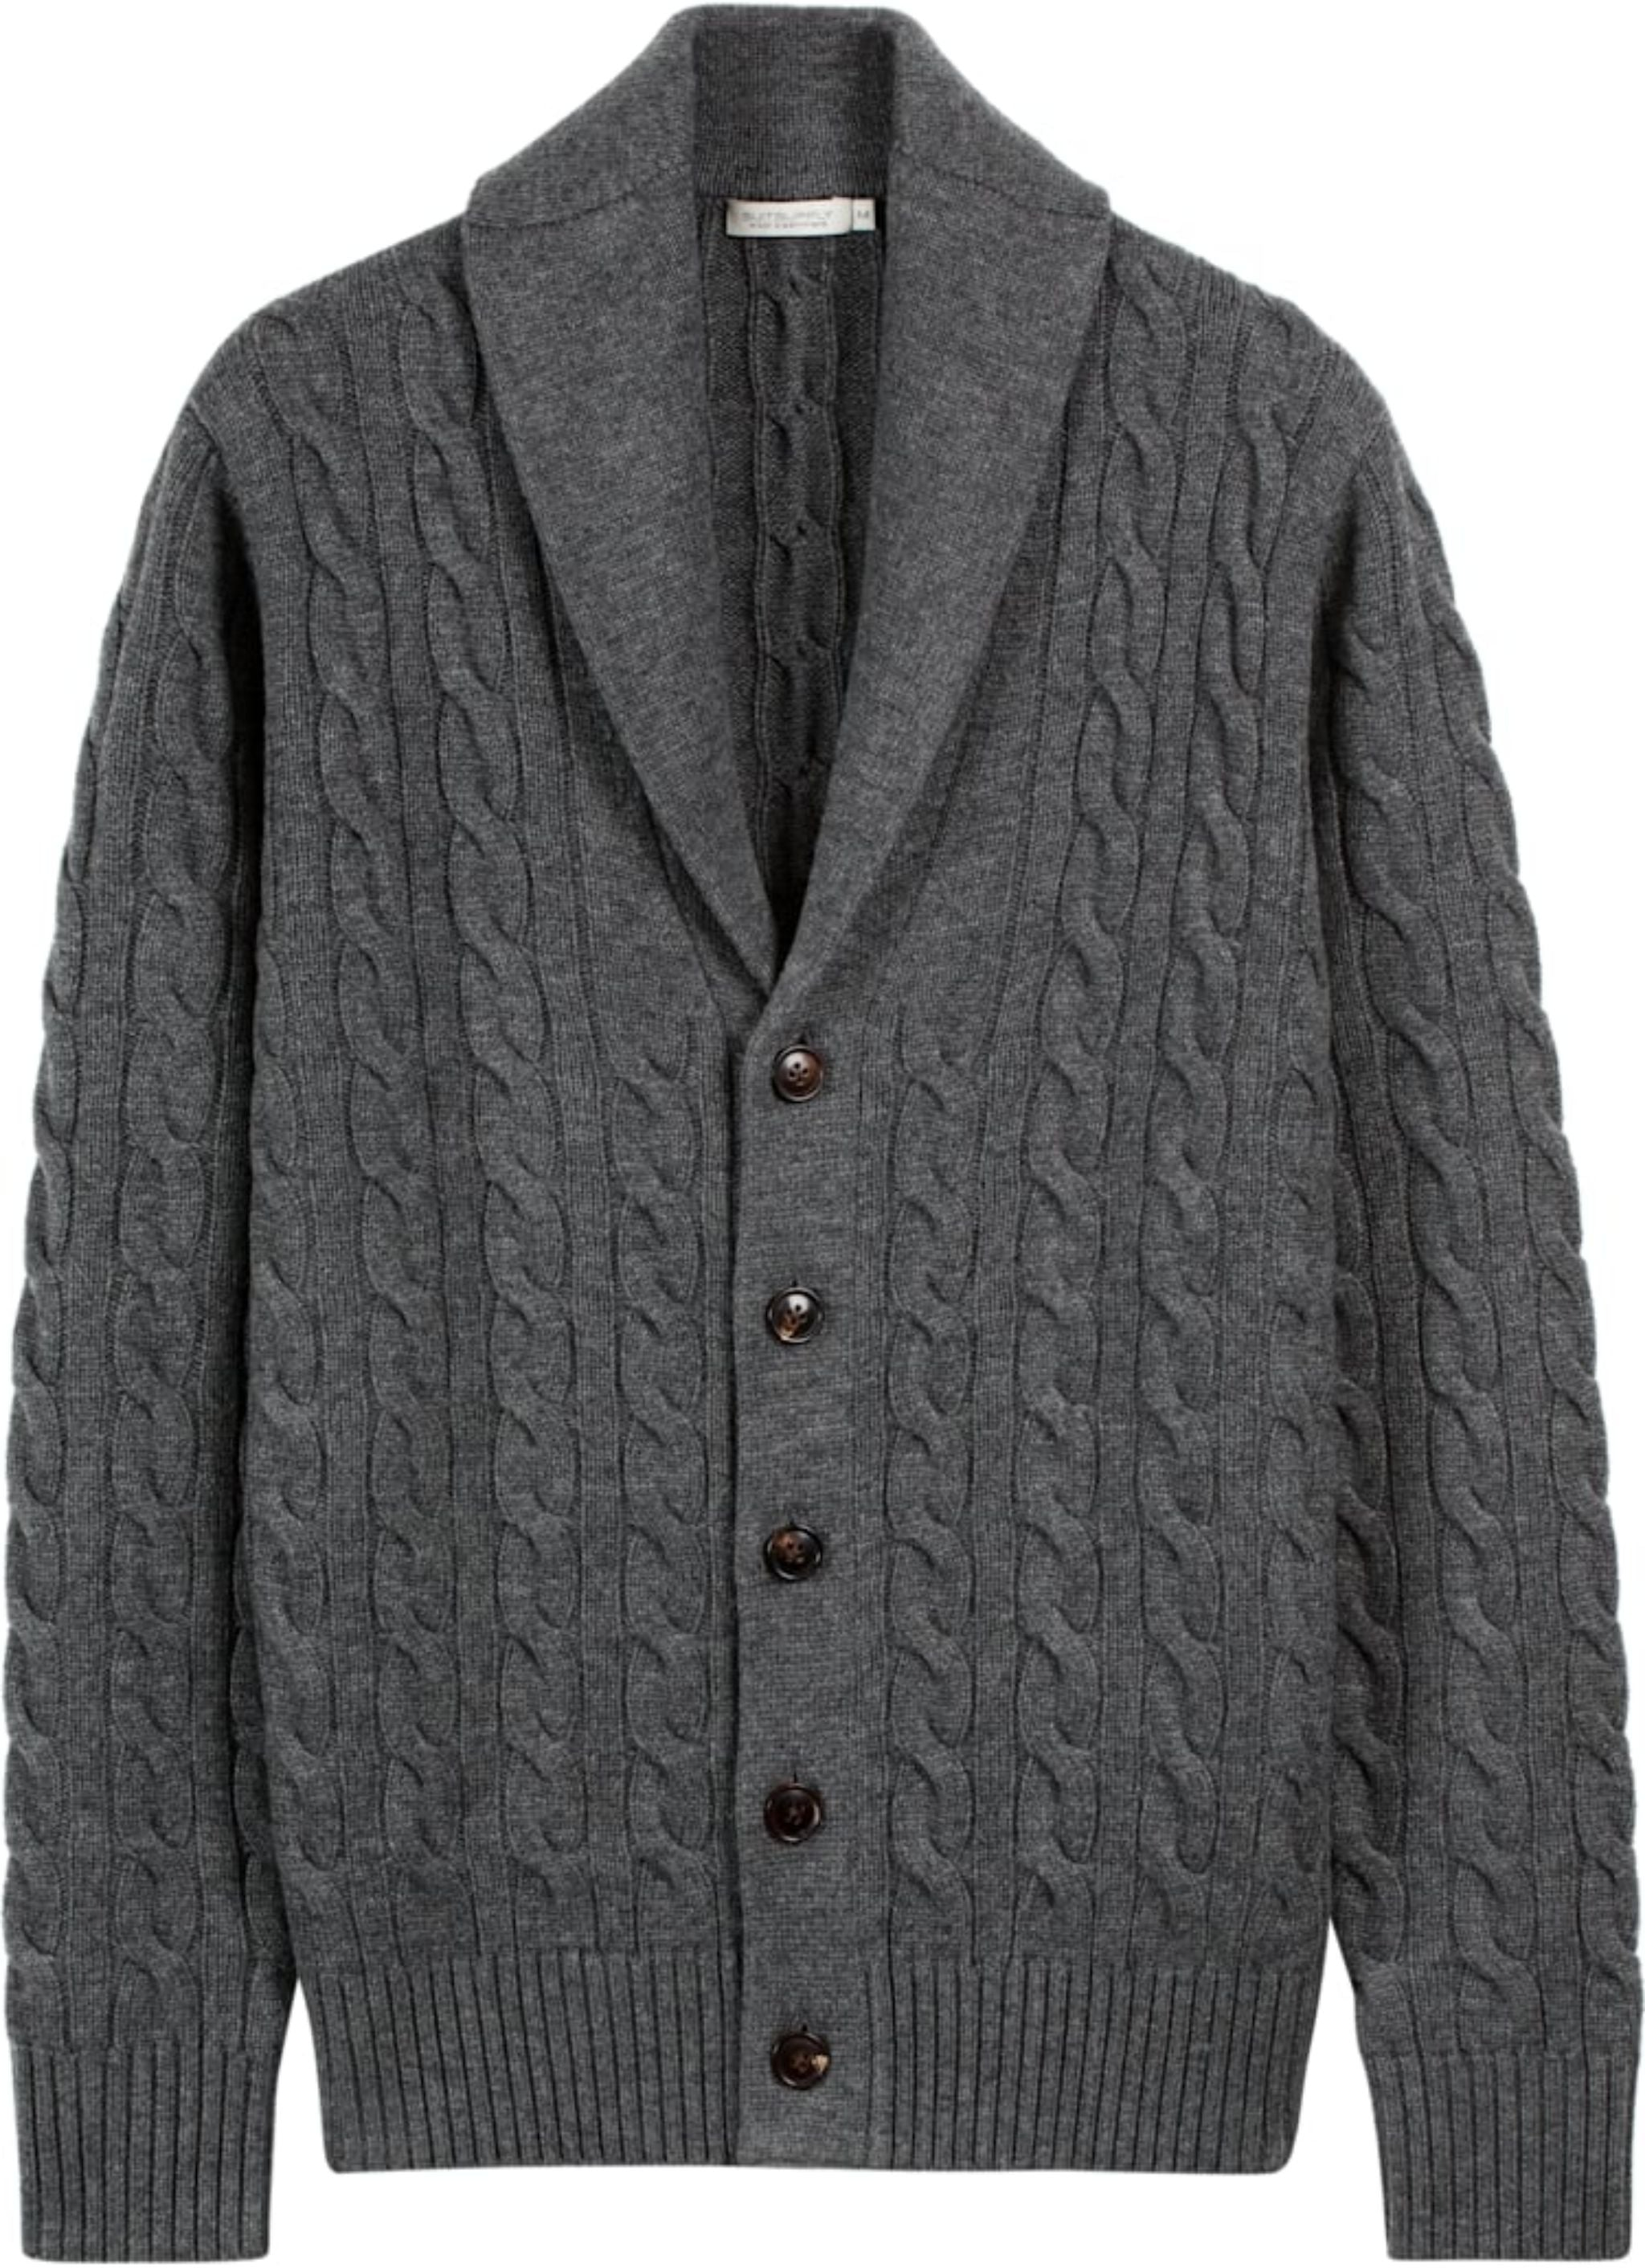 Dark gray suitsupply shawl collar cardigan